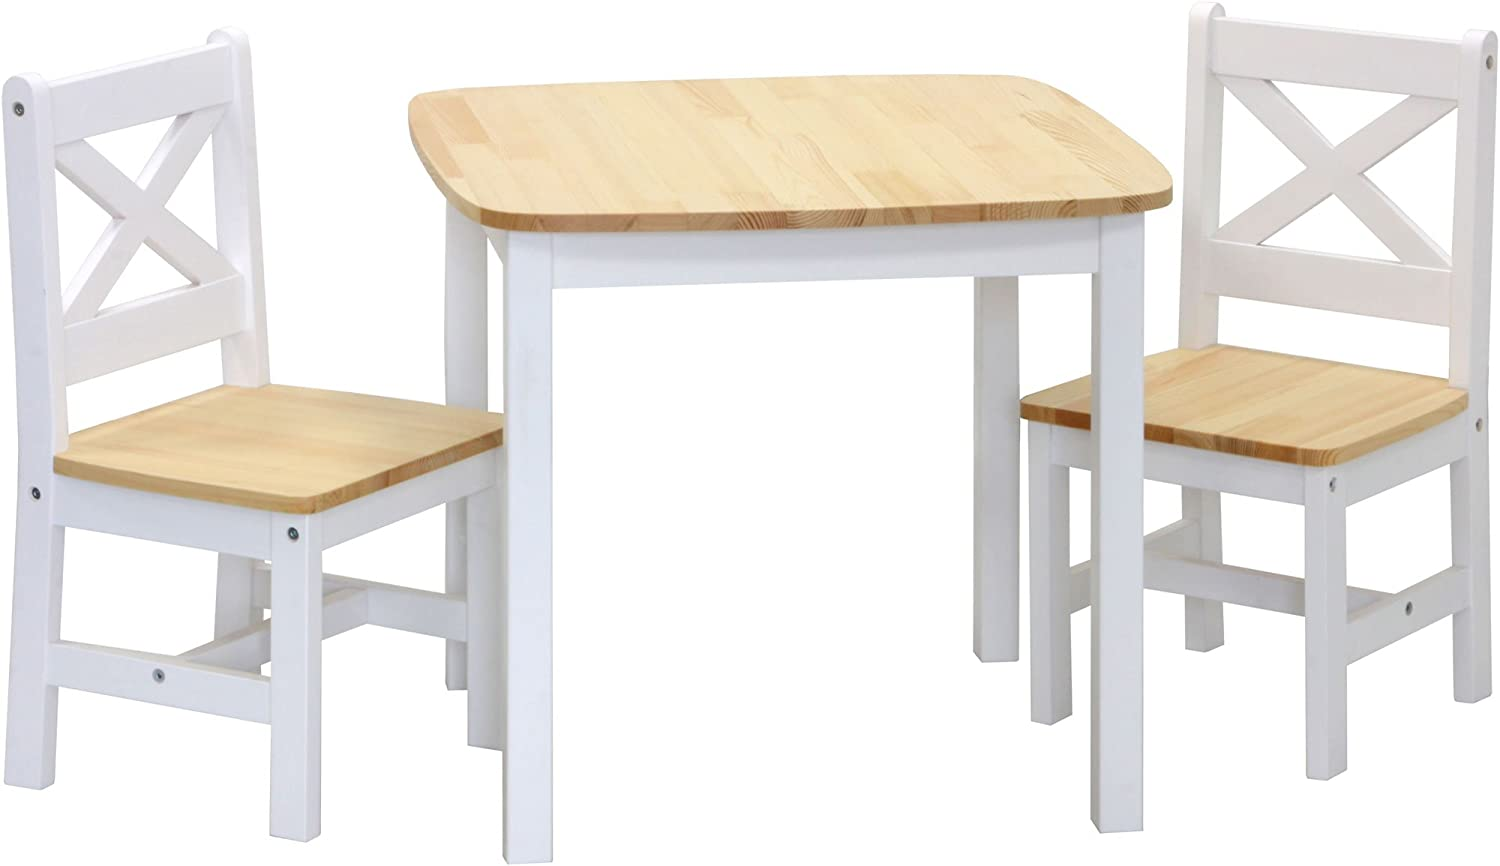 IB-Style Table and Chair Set XEN for Children wooden - 3 Variations - Table and 2 Chairs